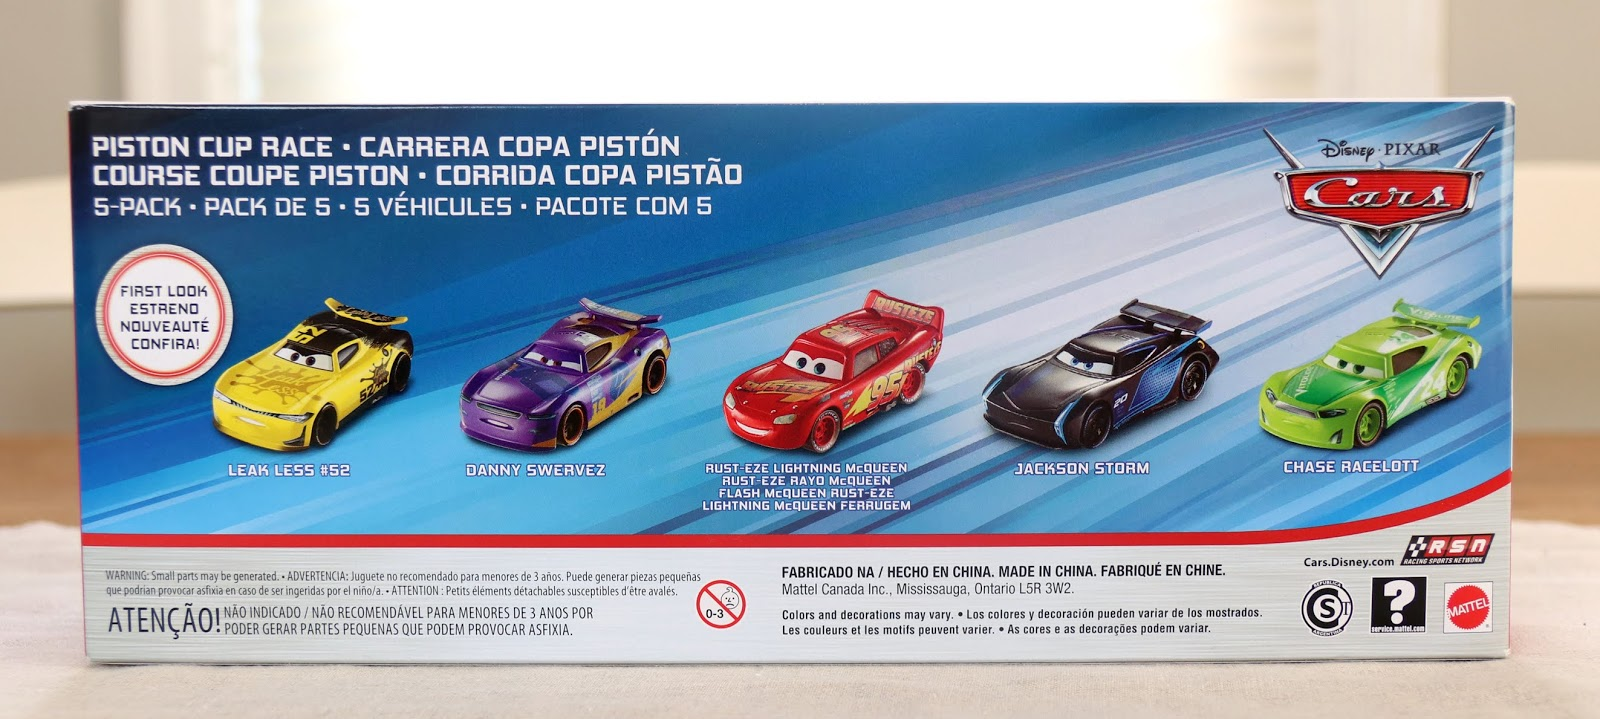 pixar cars mattel piston cup 5-pack 2019